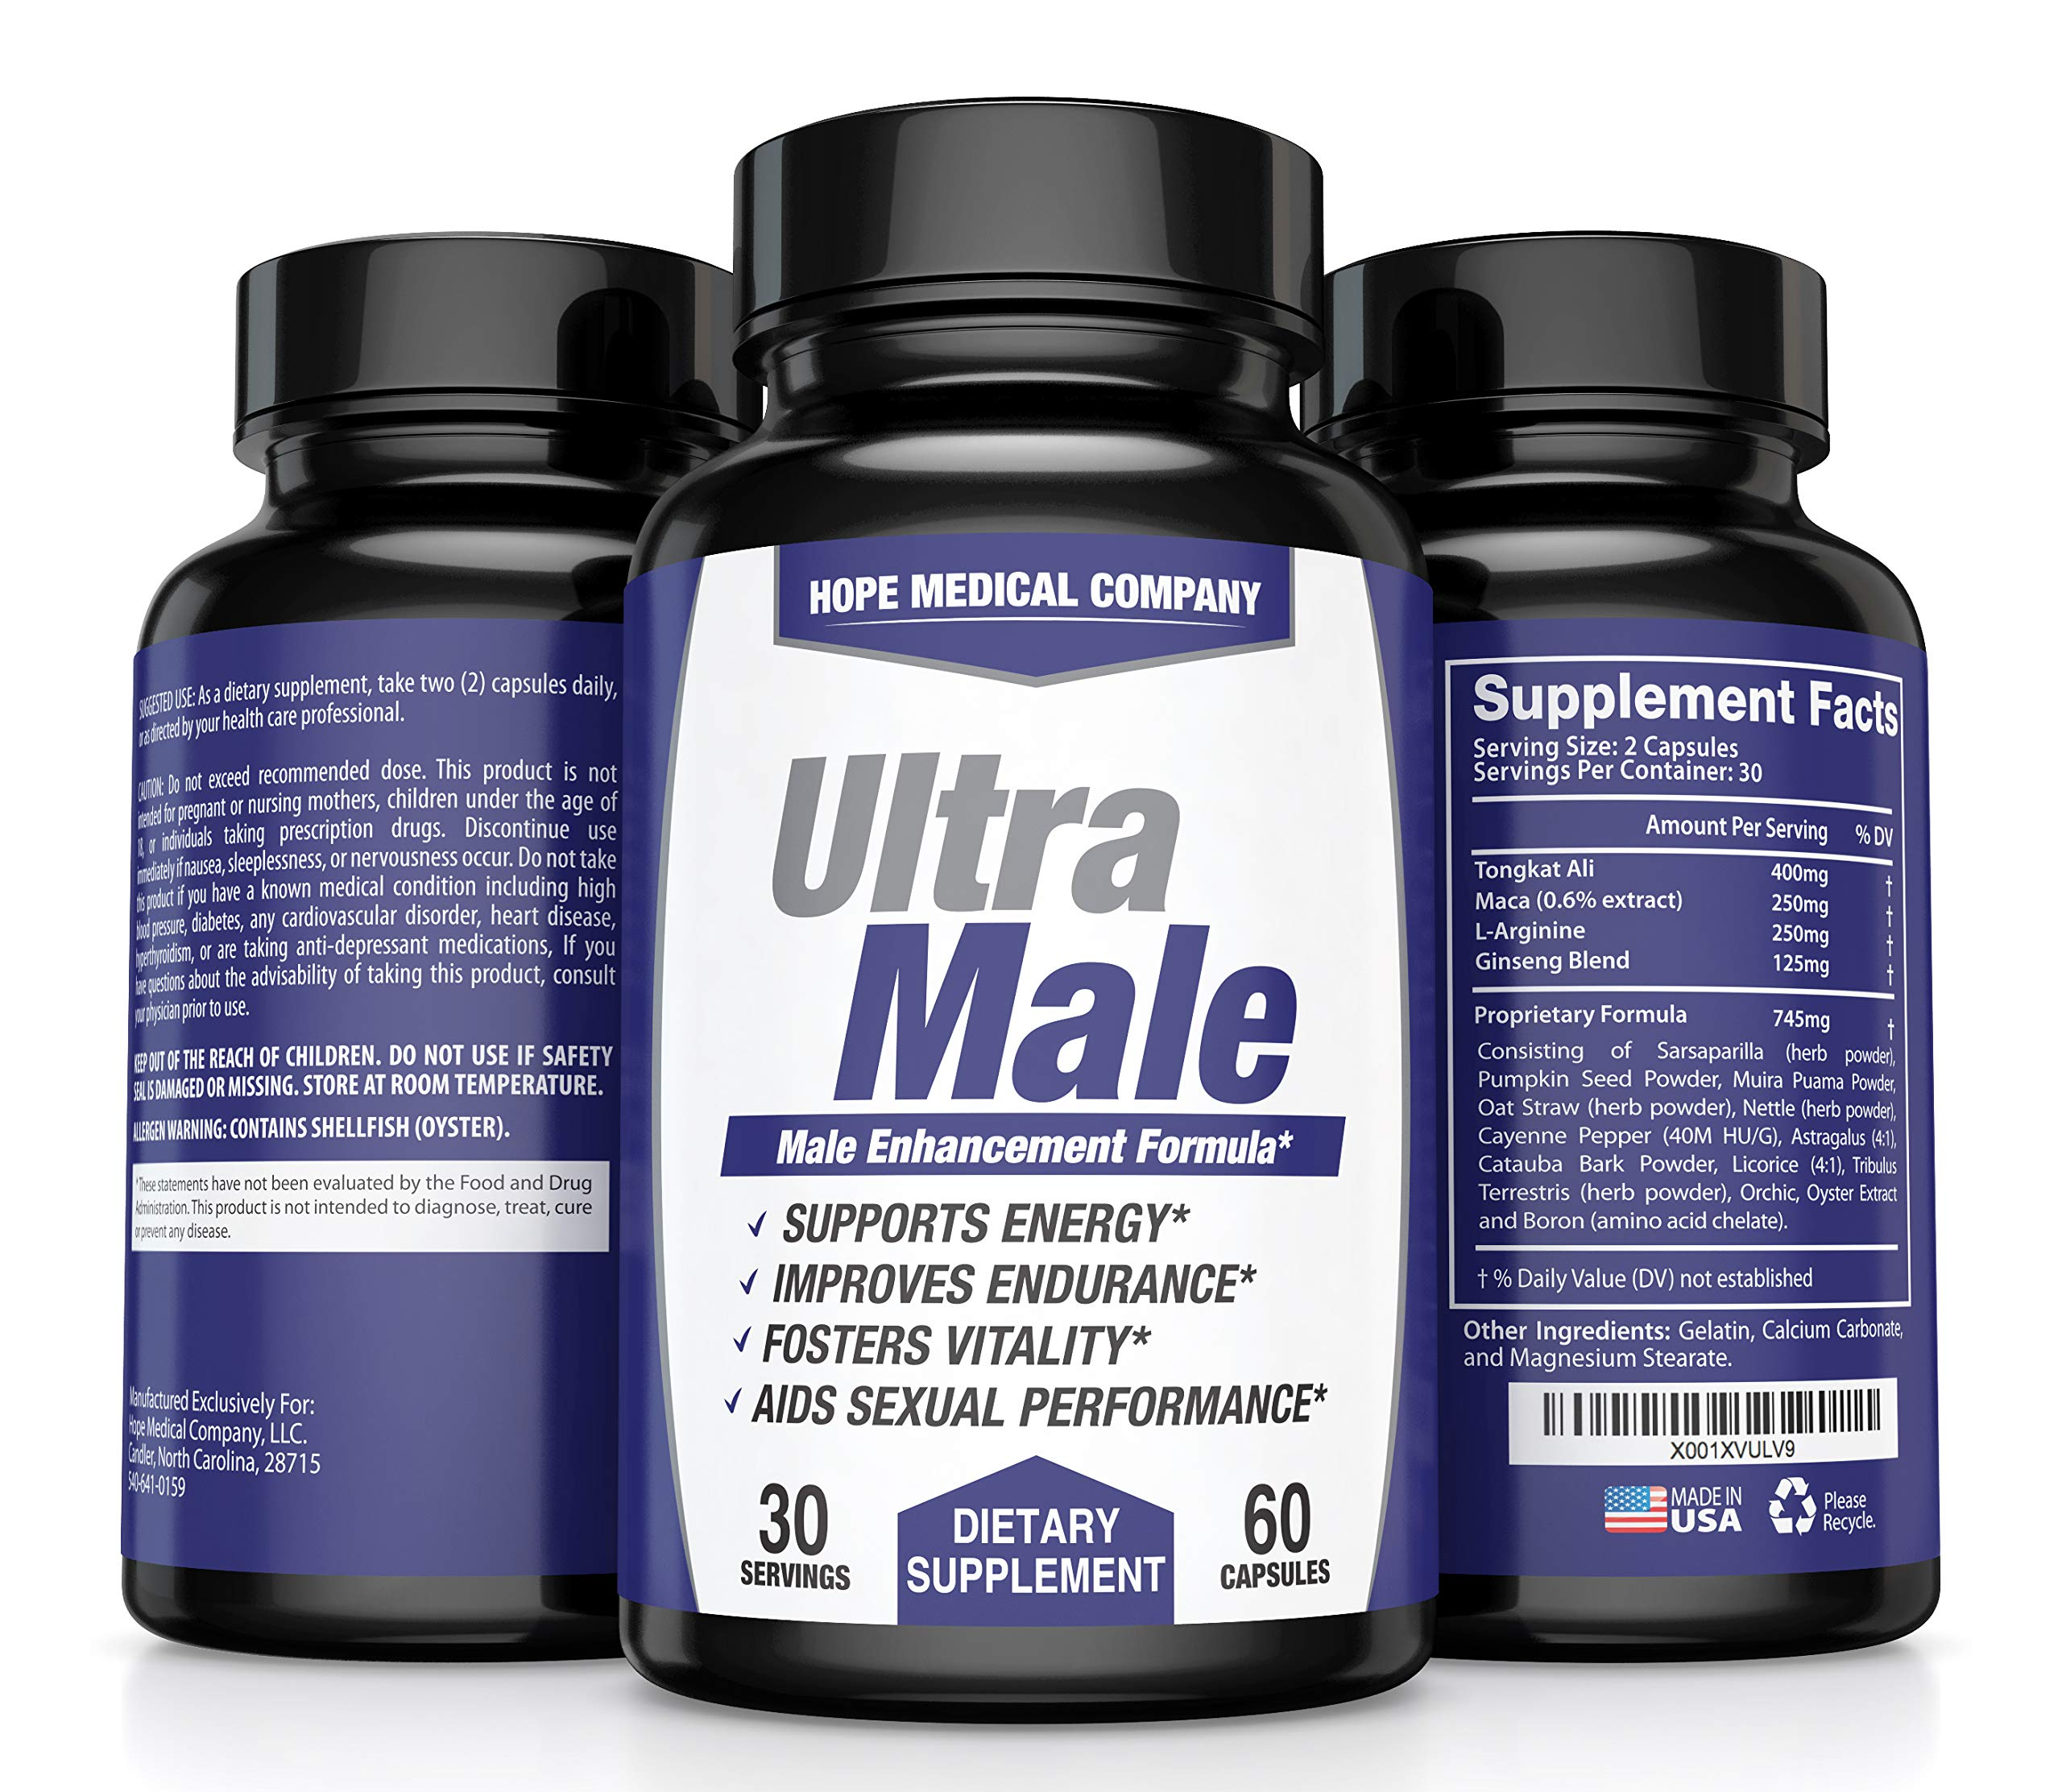 Best Fast-Acting Male Enhancing Pills - #1 Testosterone Booster for Men Increase Size, Drive, Stamina & Endurance - L Arginine, Tongkat, Maca, Ginseng Supplement - Boost Energy, Muscle & Performance by HMC (Image #1)